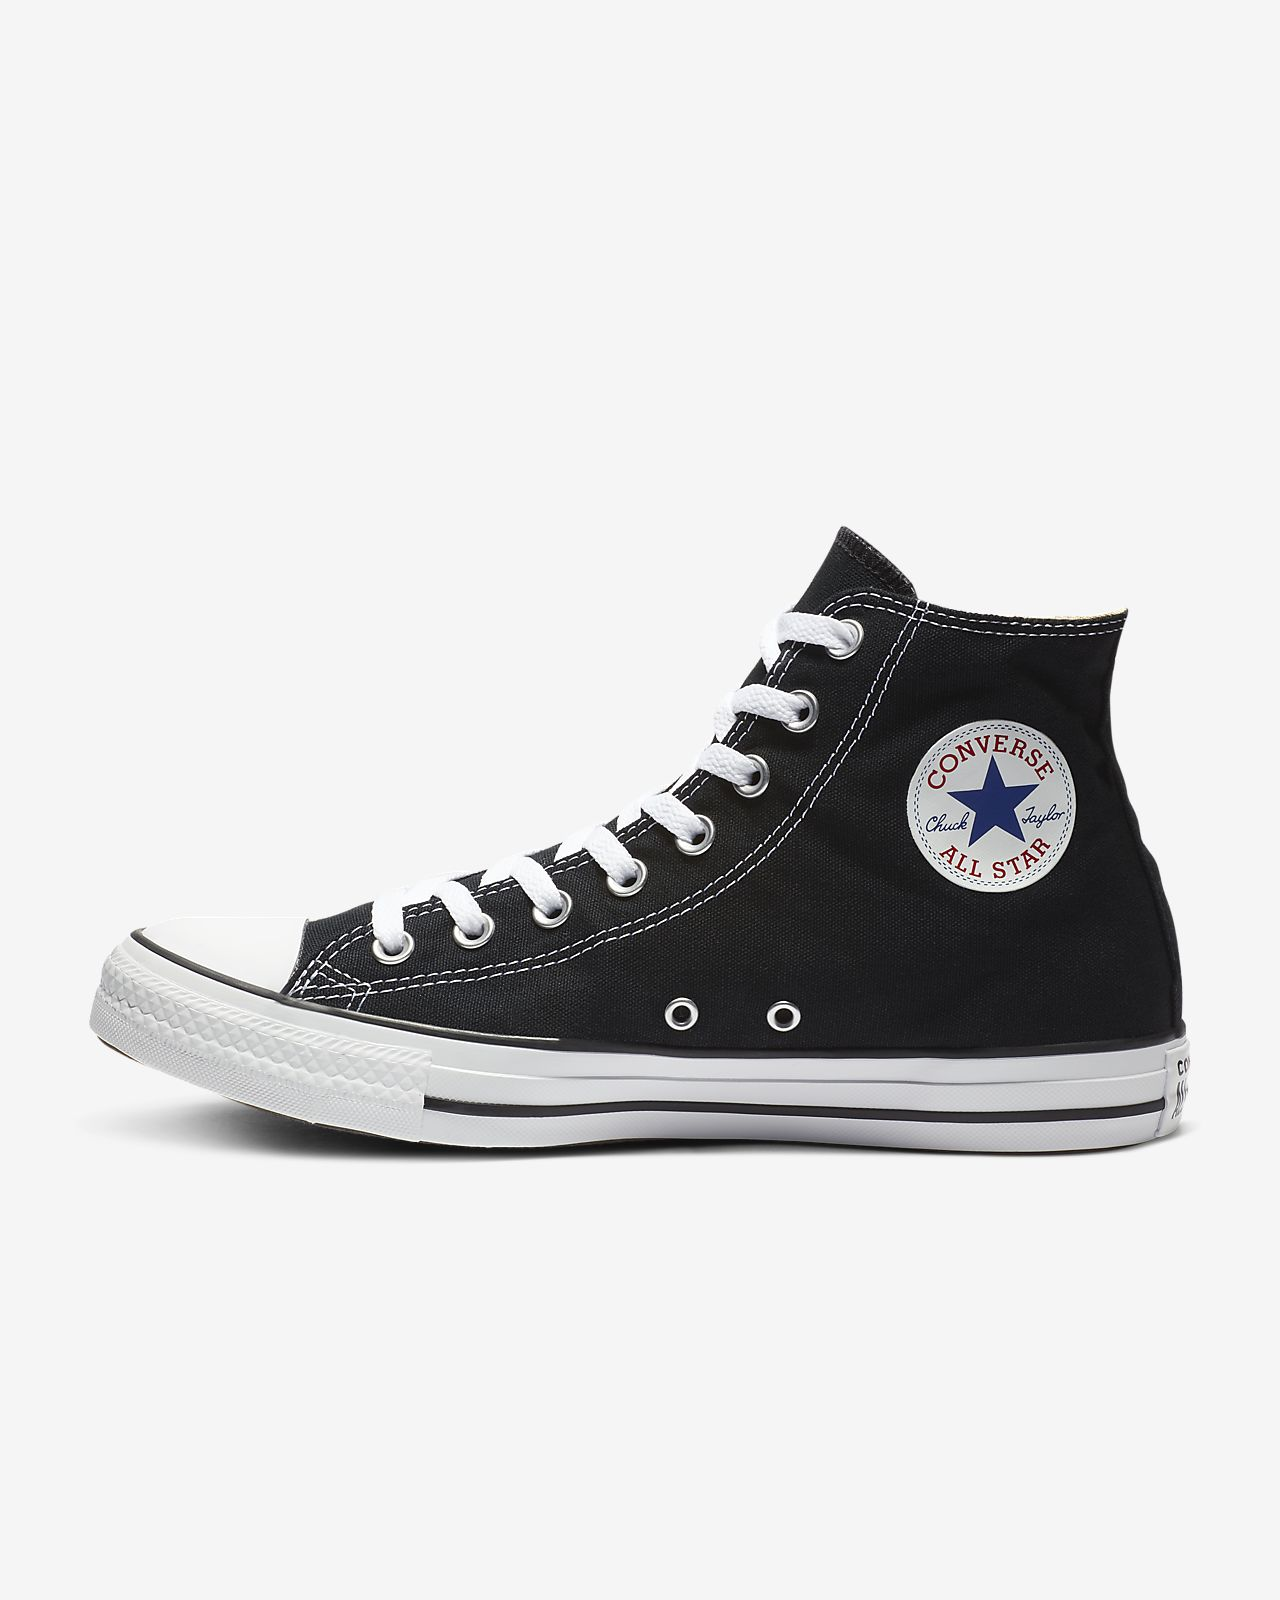 converse chuck taylor hi all star